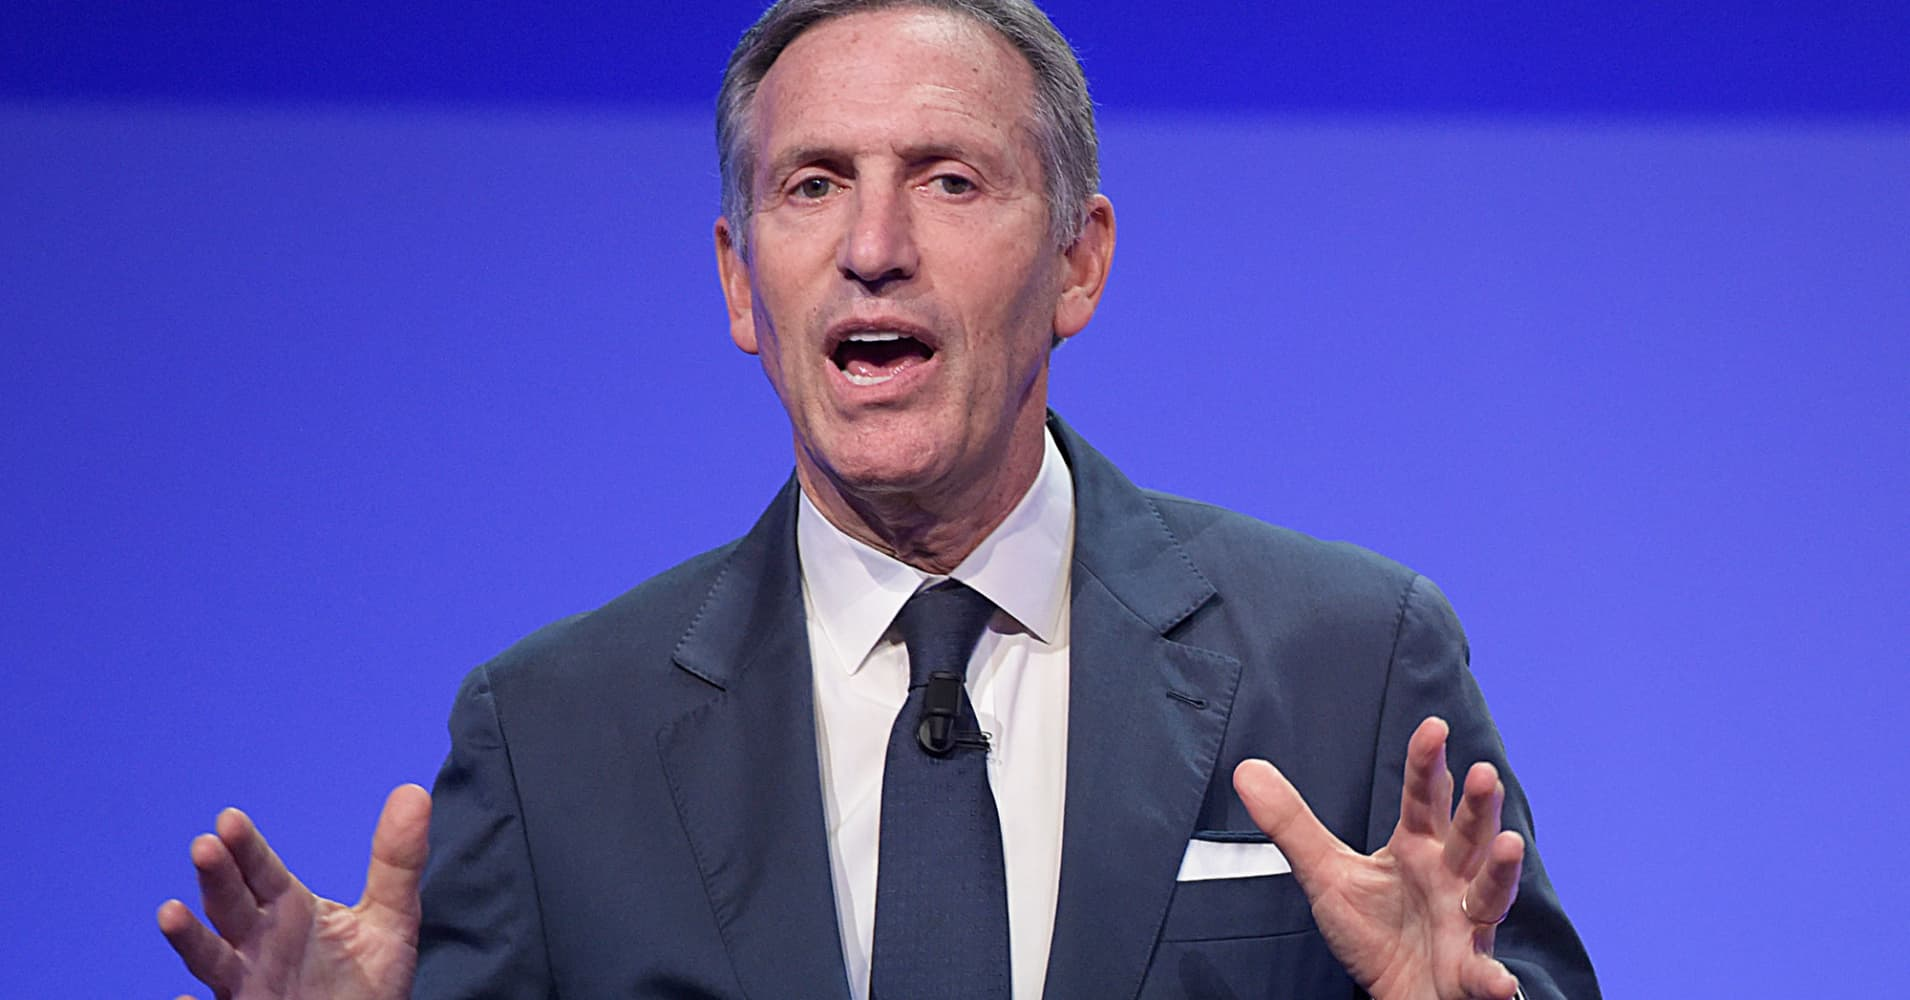 Howard Schultz could ditch both parties, US 'ripe for an independent candidacy': GOP strategist